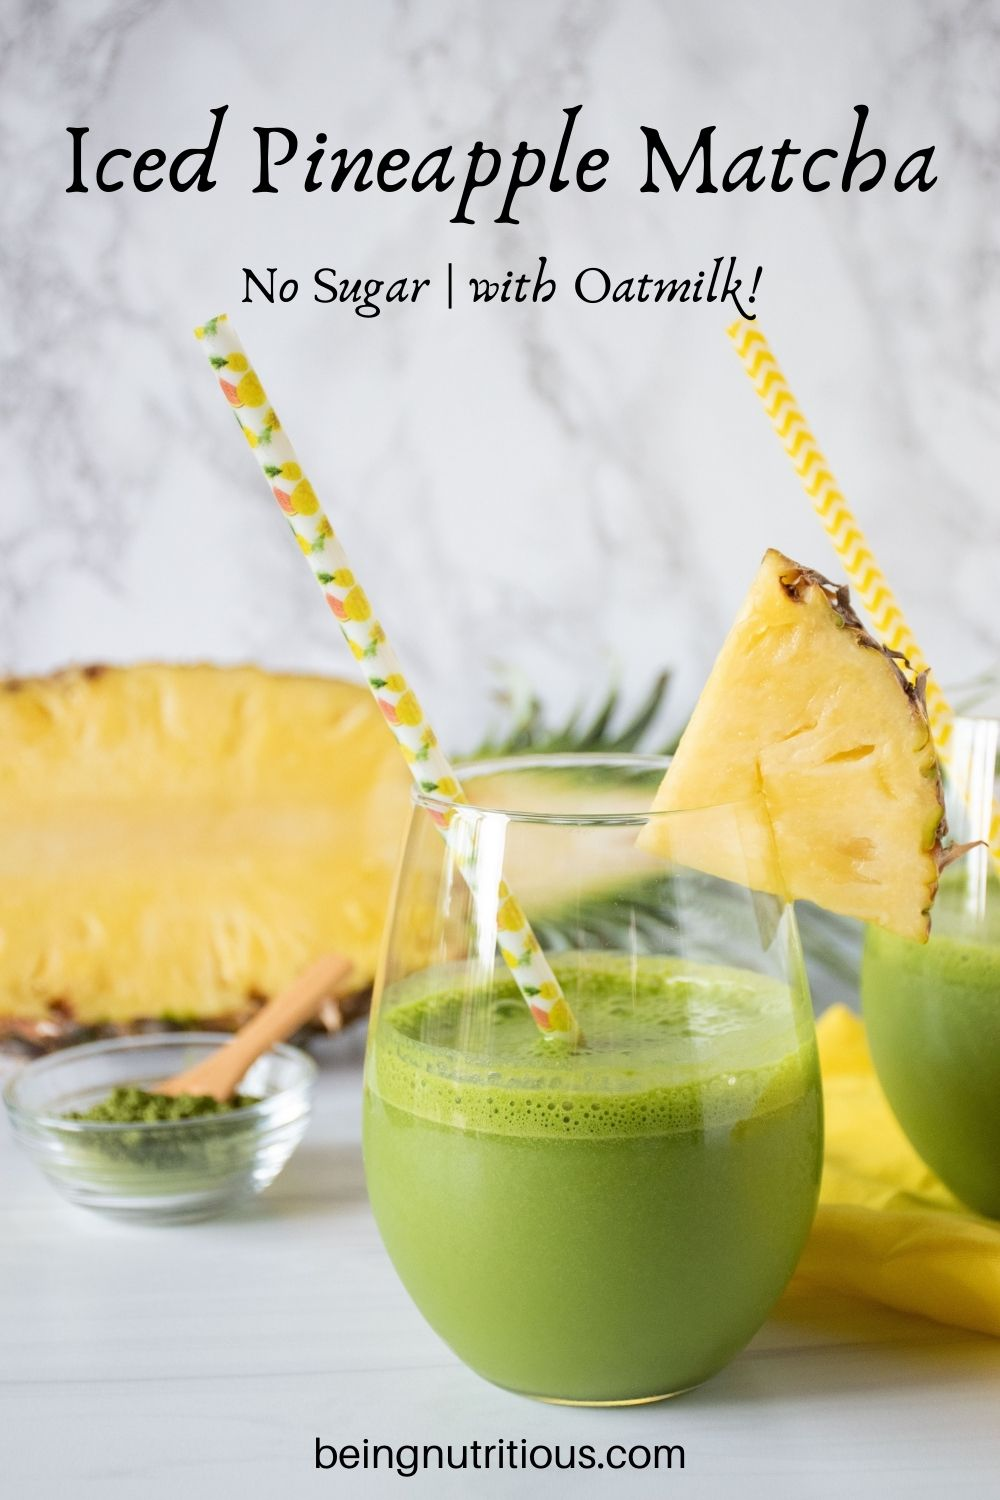 Glass of iced matcha drink, garnished with a pineapple slice. Text overlay: Iced Pineapple Matcha; no sugar, with oatmilk!